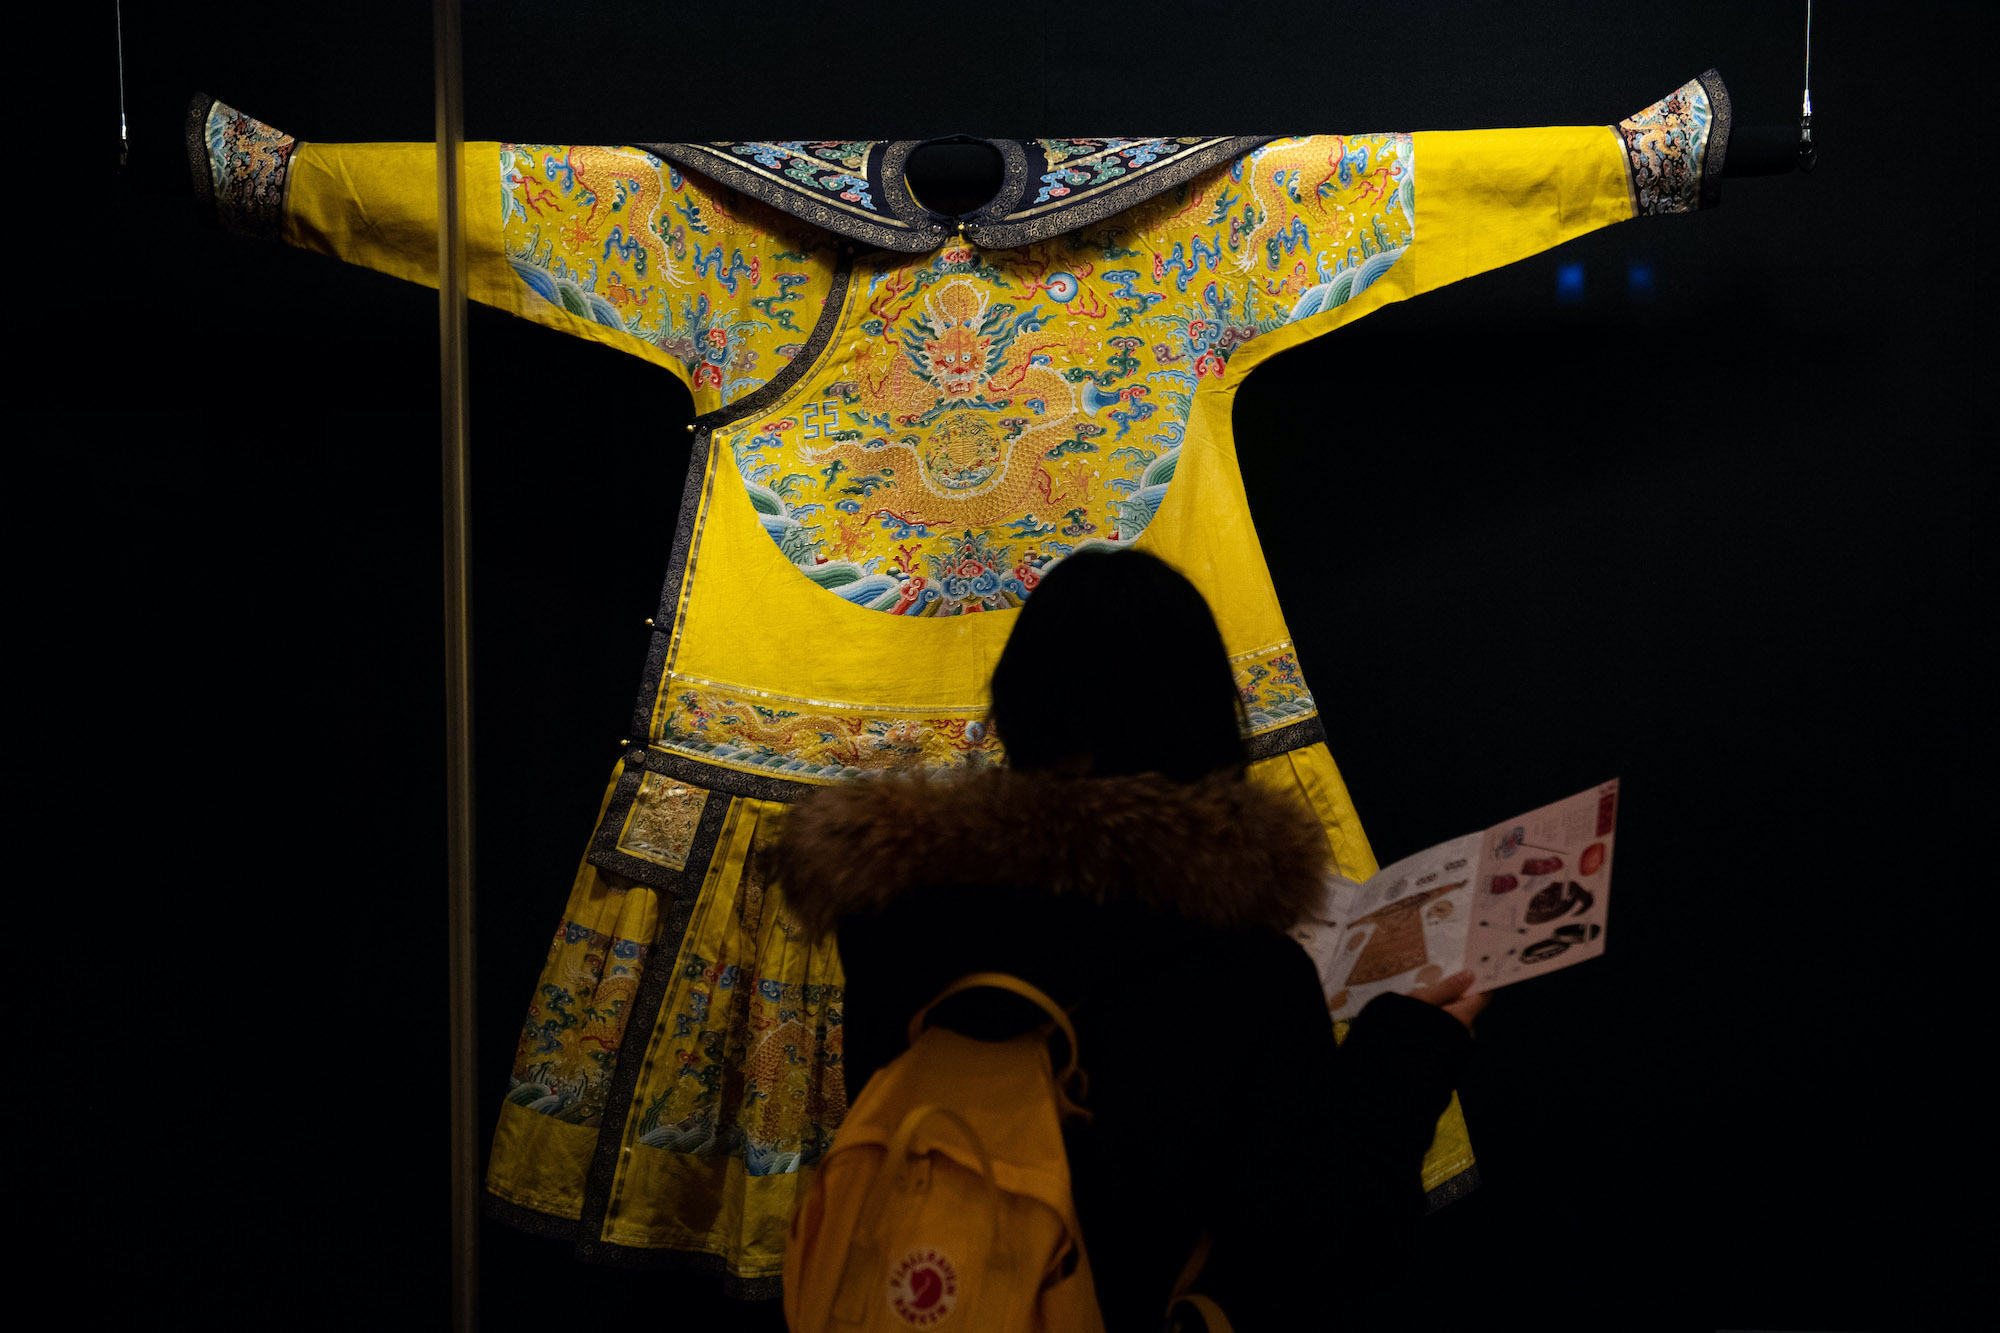 An audience looks at one of the costumes in the exhibition | Photo by Xinhua News Agency/Cheong Kam Ka